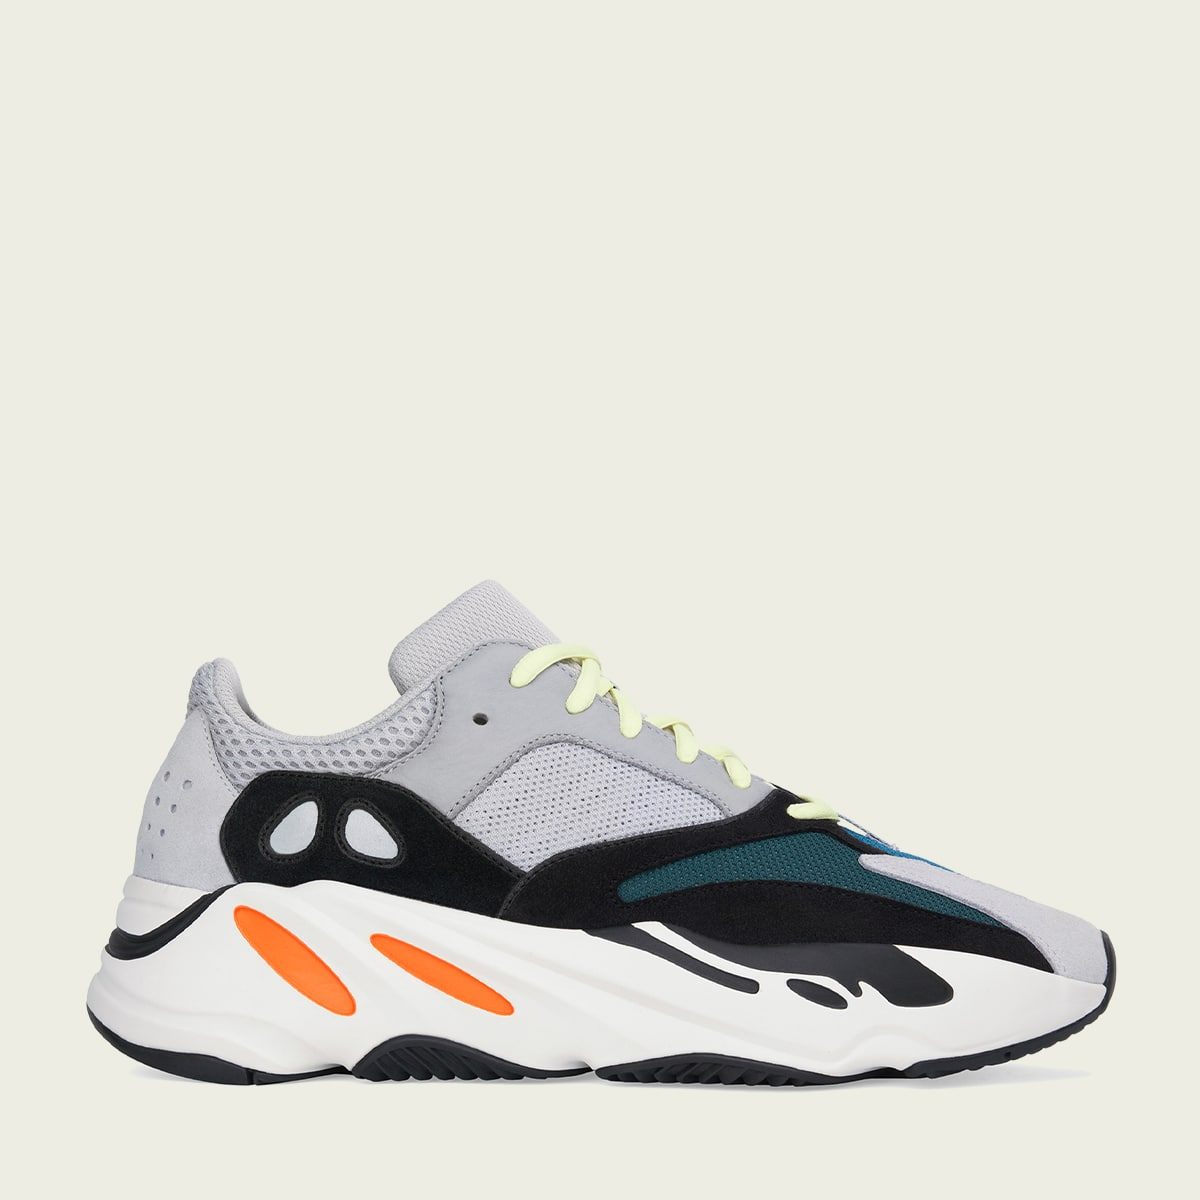 adidas Originals YEEZY BOOST 700 MGH SOLID GREY/CHALK WHITE/CORE BLACK 19FW-S_photo_large